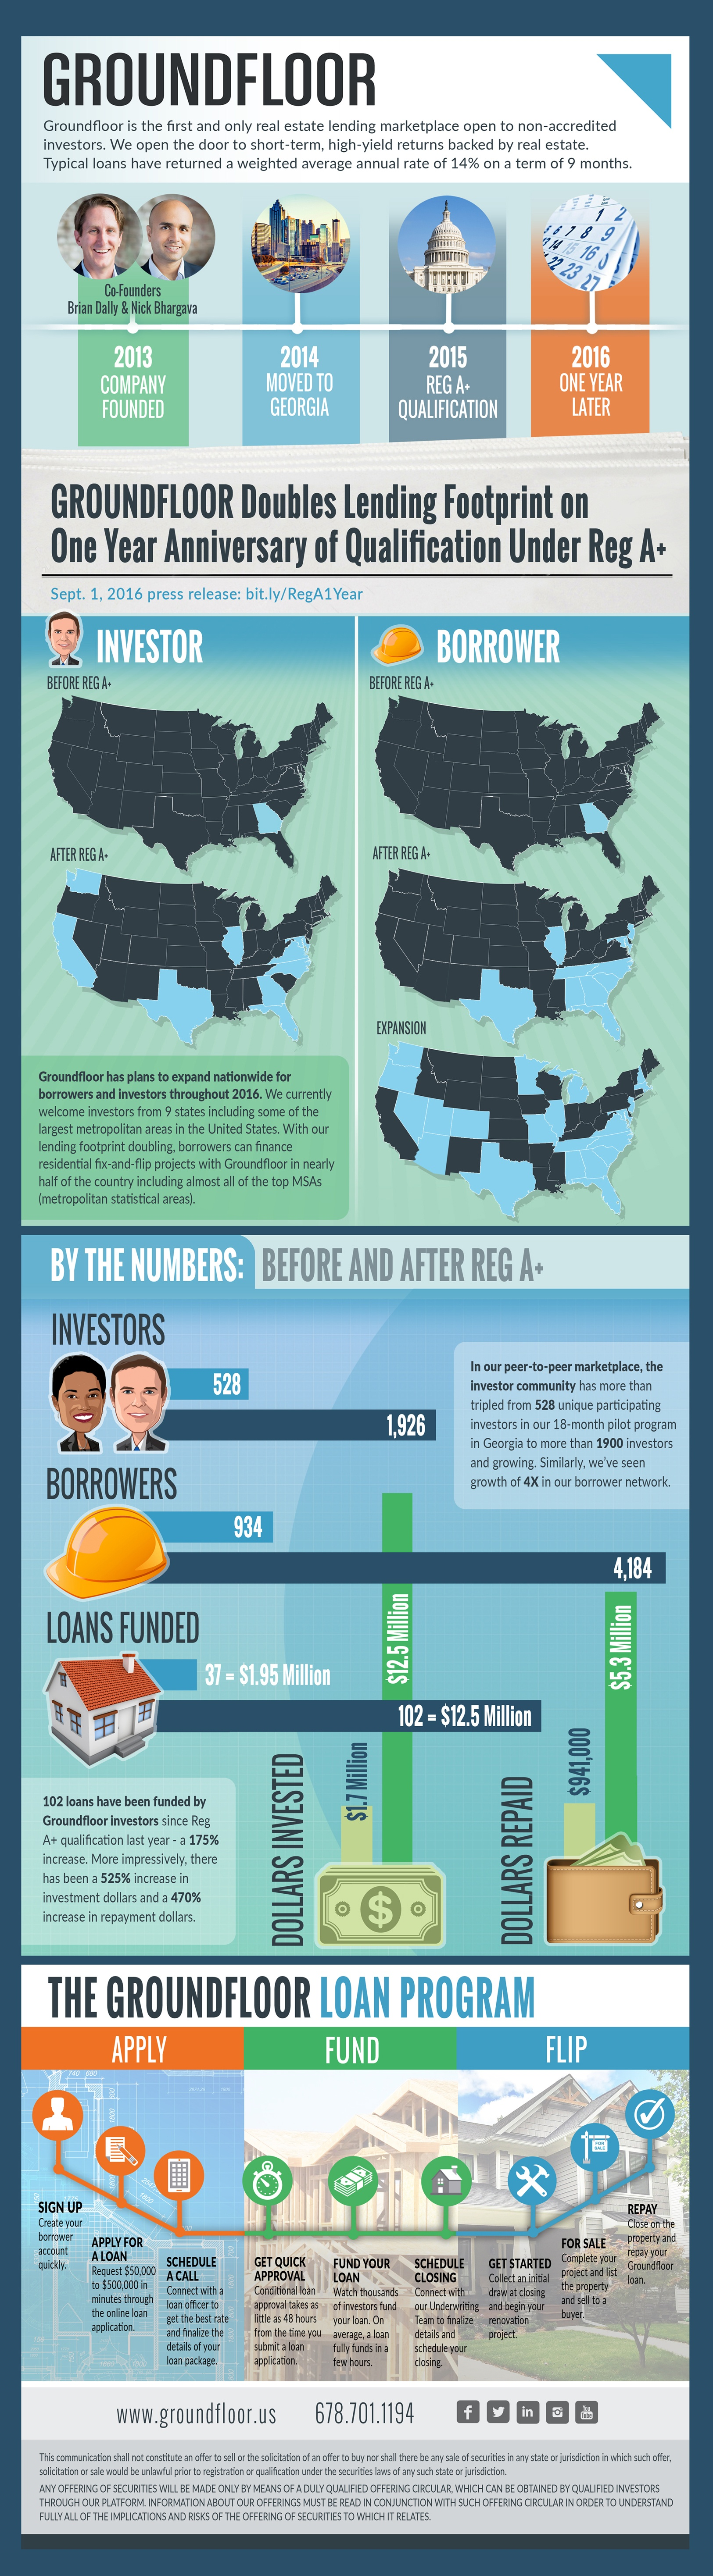 Click to expand and see the entire infographic.